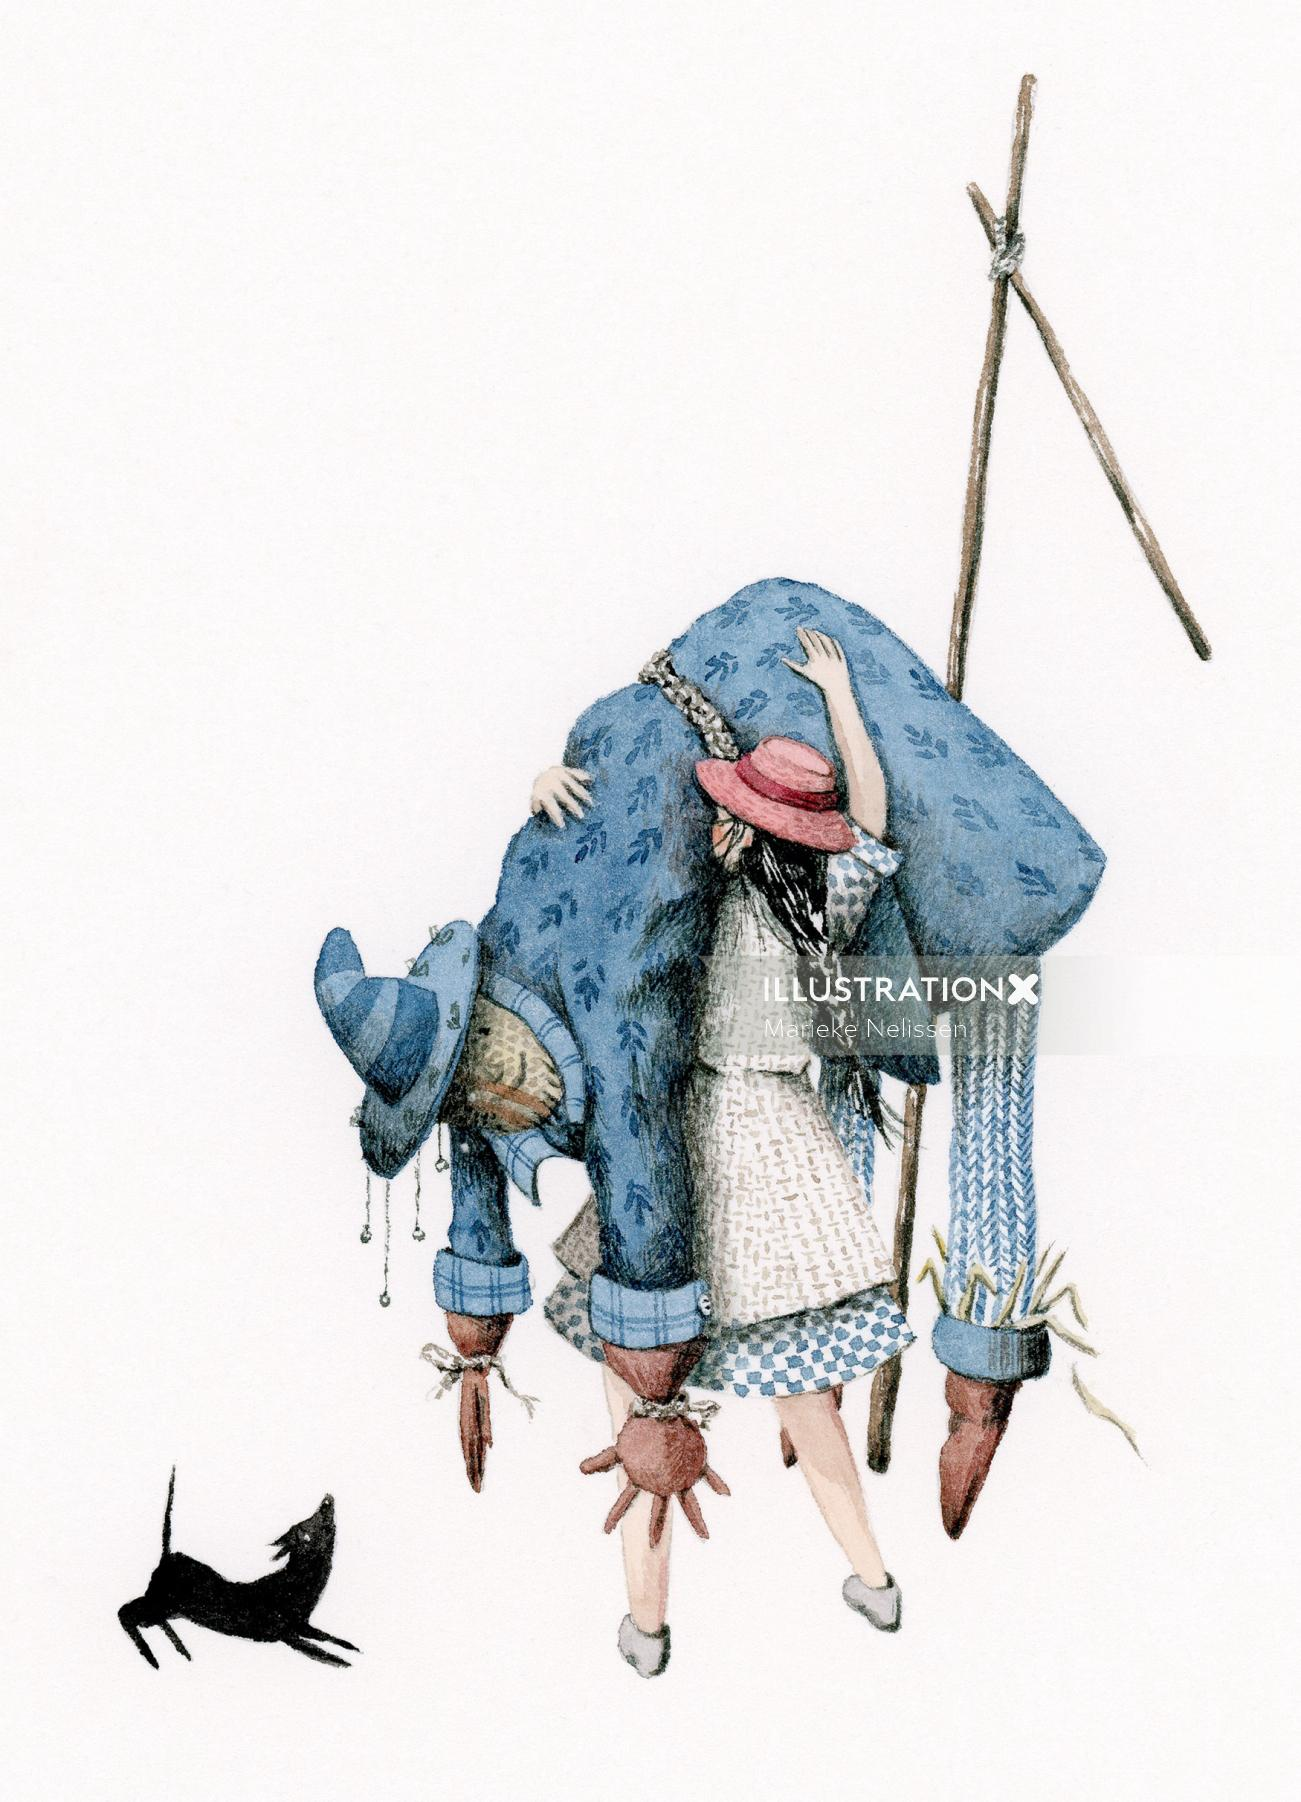 Dorothy lifting the scarecrow from his pole.